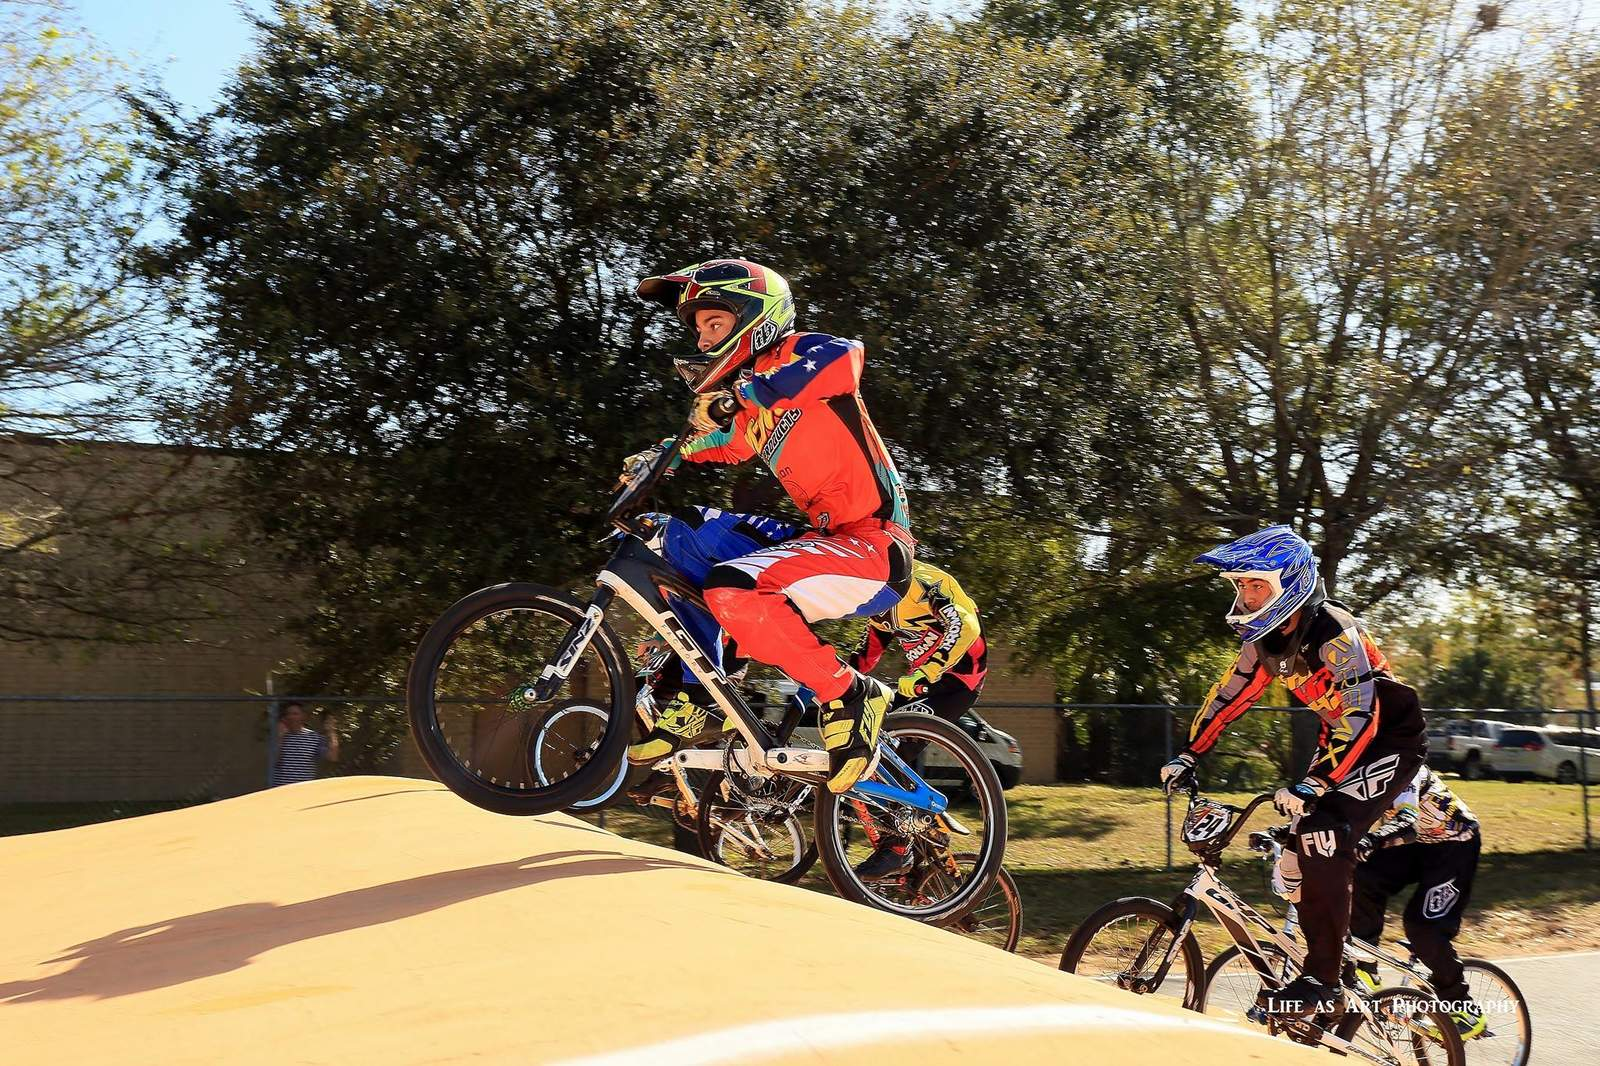 http://uploads.bmxmuseum.com/user-images/156598/23632523_1629947387088091_3297712641781168581_o5a13833b75.jpg